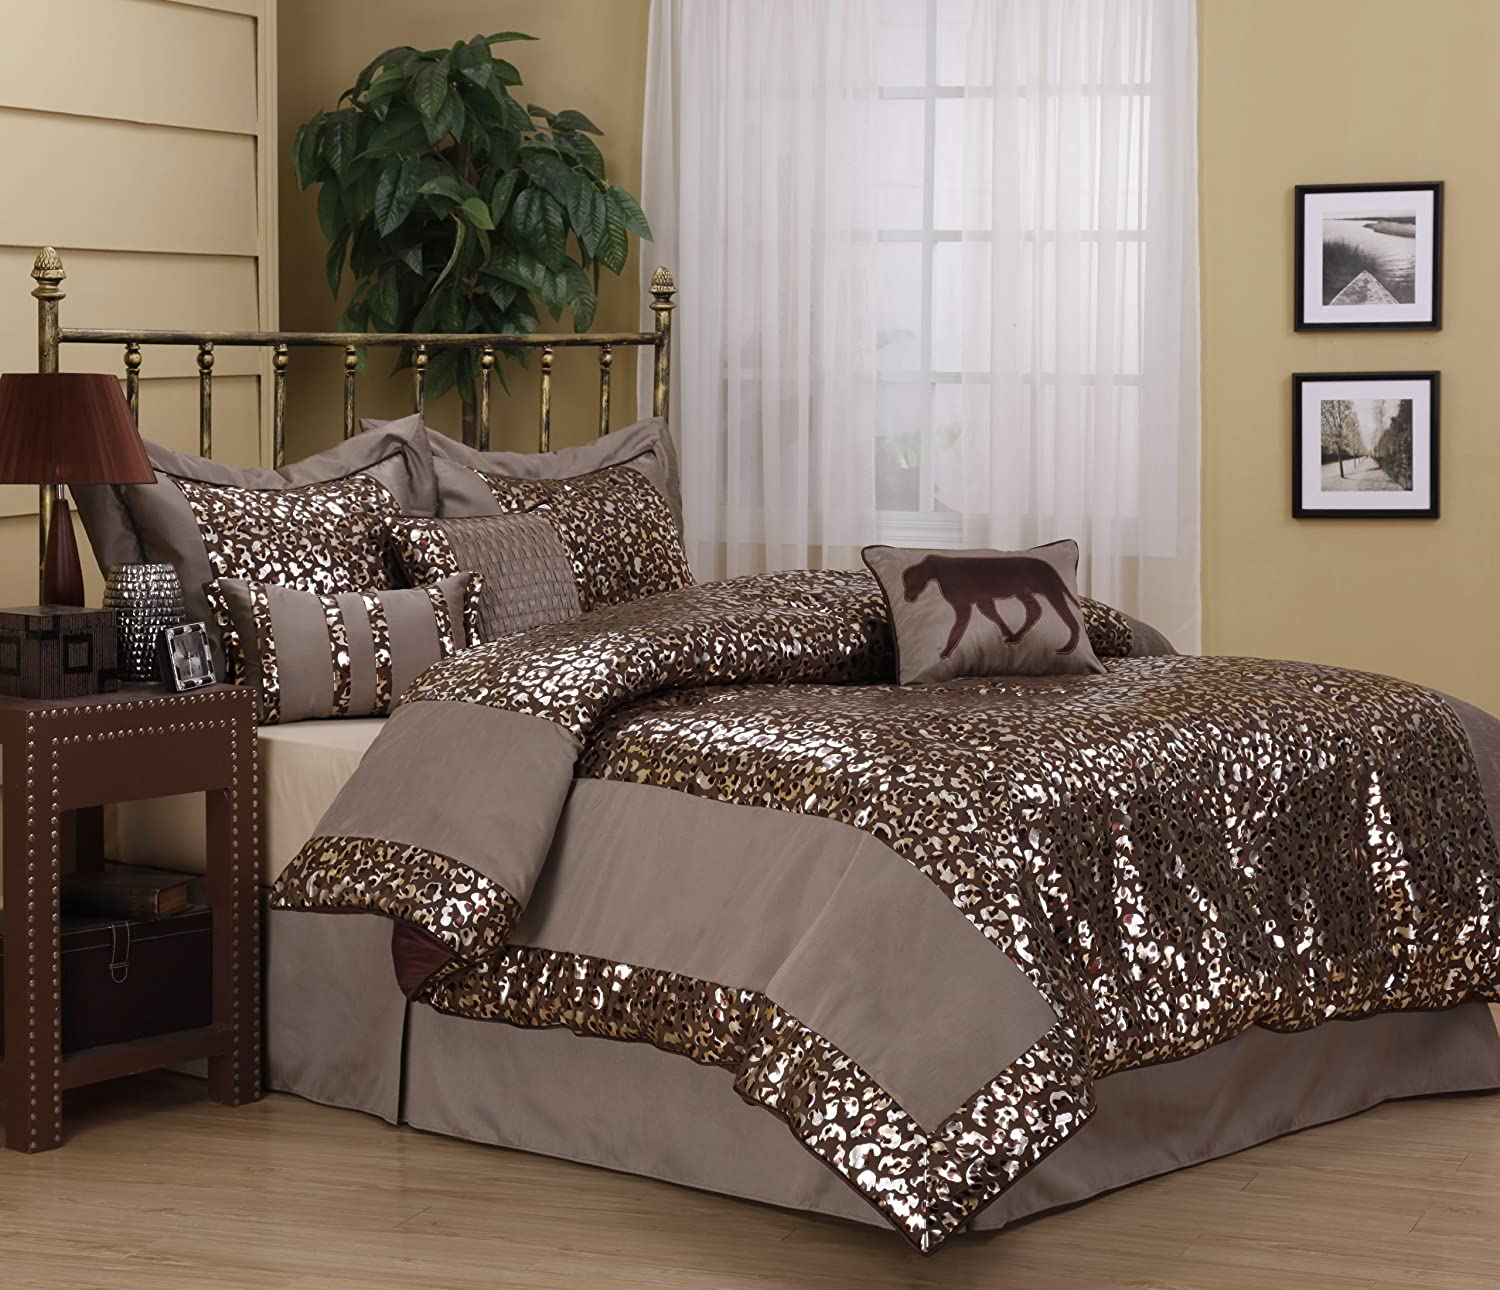 chelsie queen comforter set foil printed leopard bed gold brown